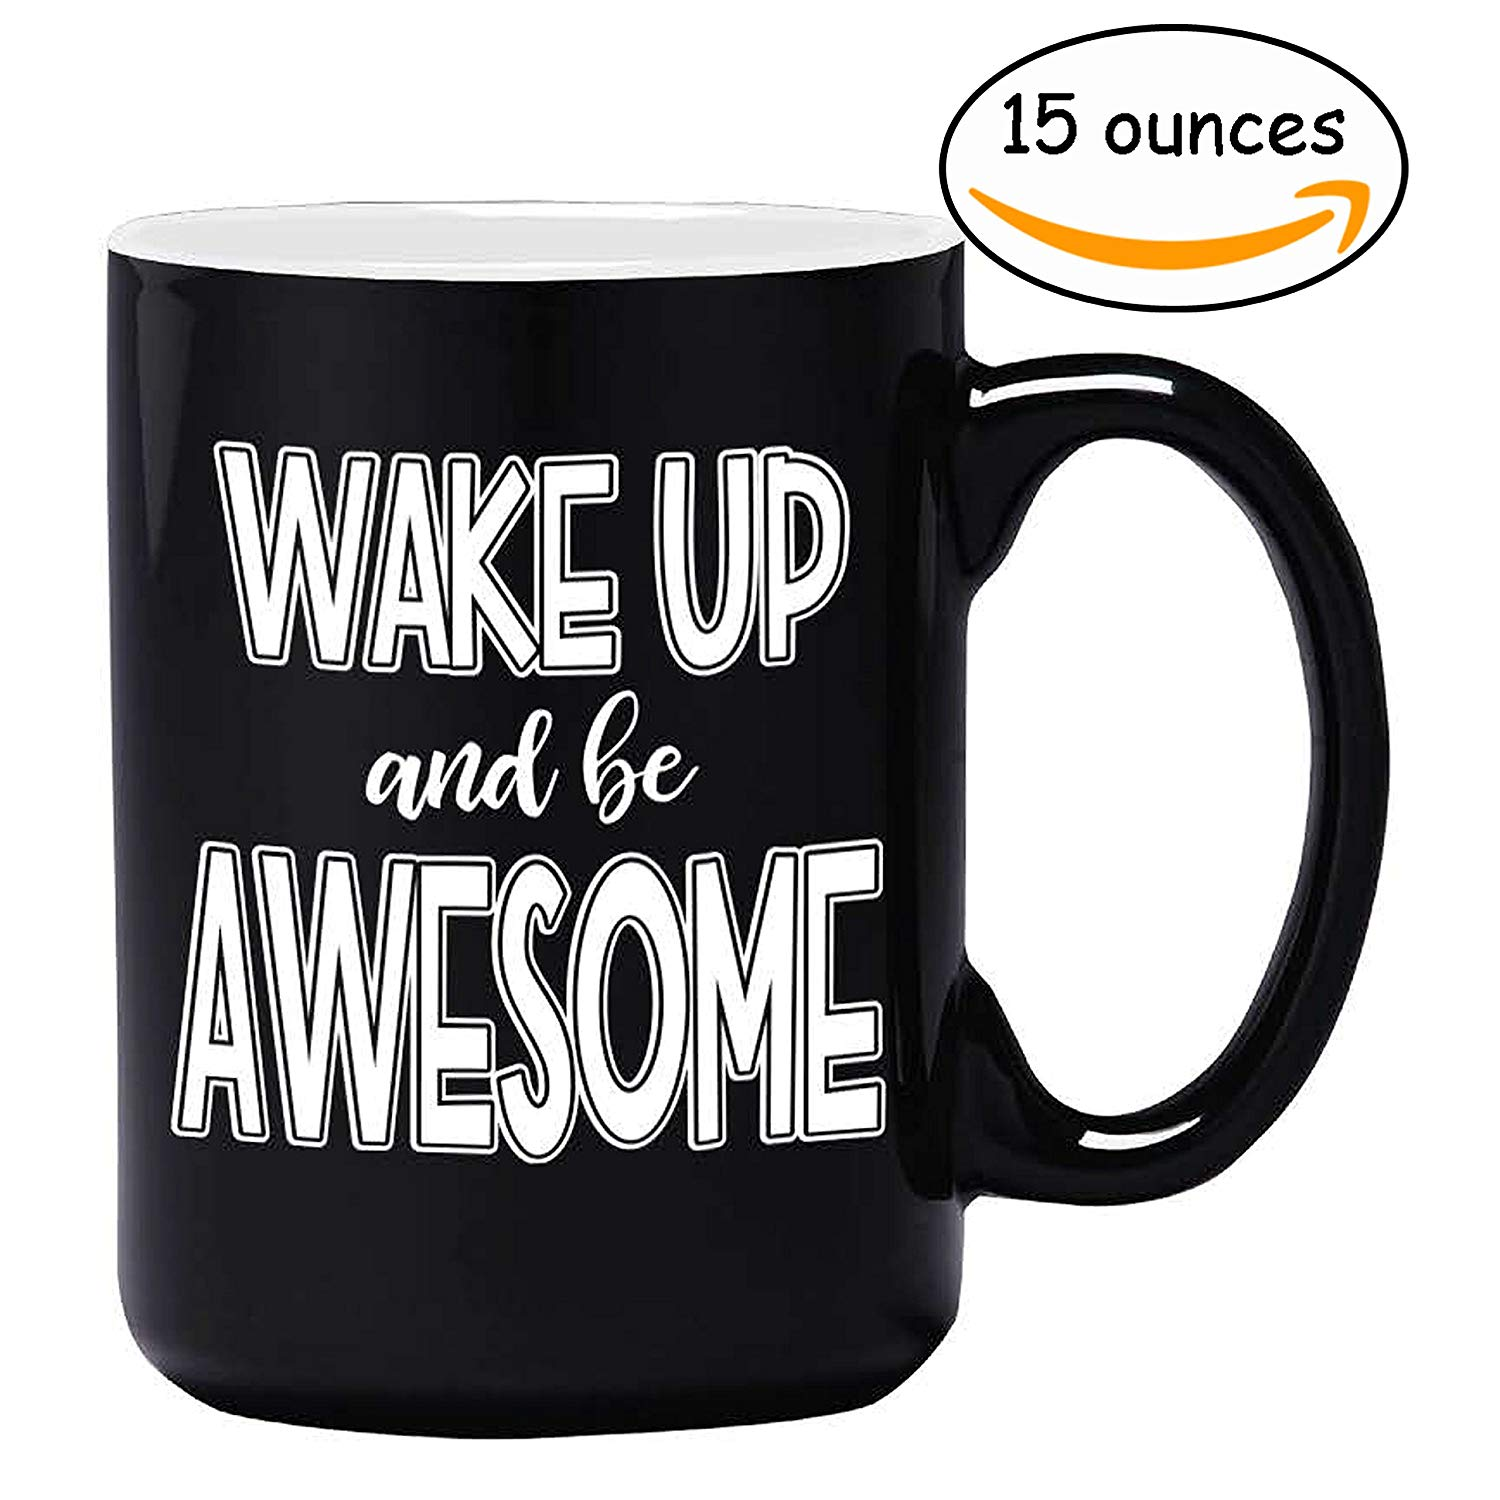 Large Funny Coffee Mug - Wake Up and Be Awesome - Unique Fun Gifts for Men, Women, Mom, Dad, Brother, Sister, Teacher, Coworkers, Boss Under $20 - Handmade Coffee Cups & Mugs with Quotes, 15 oz